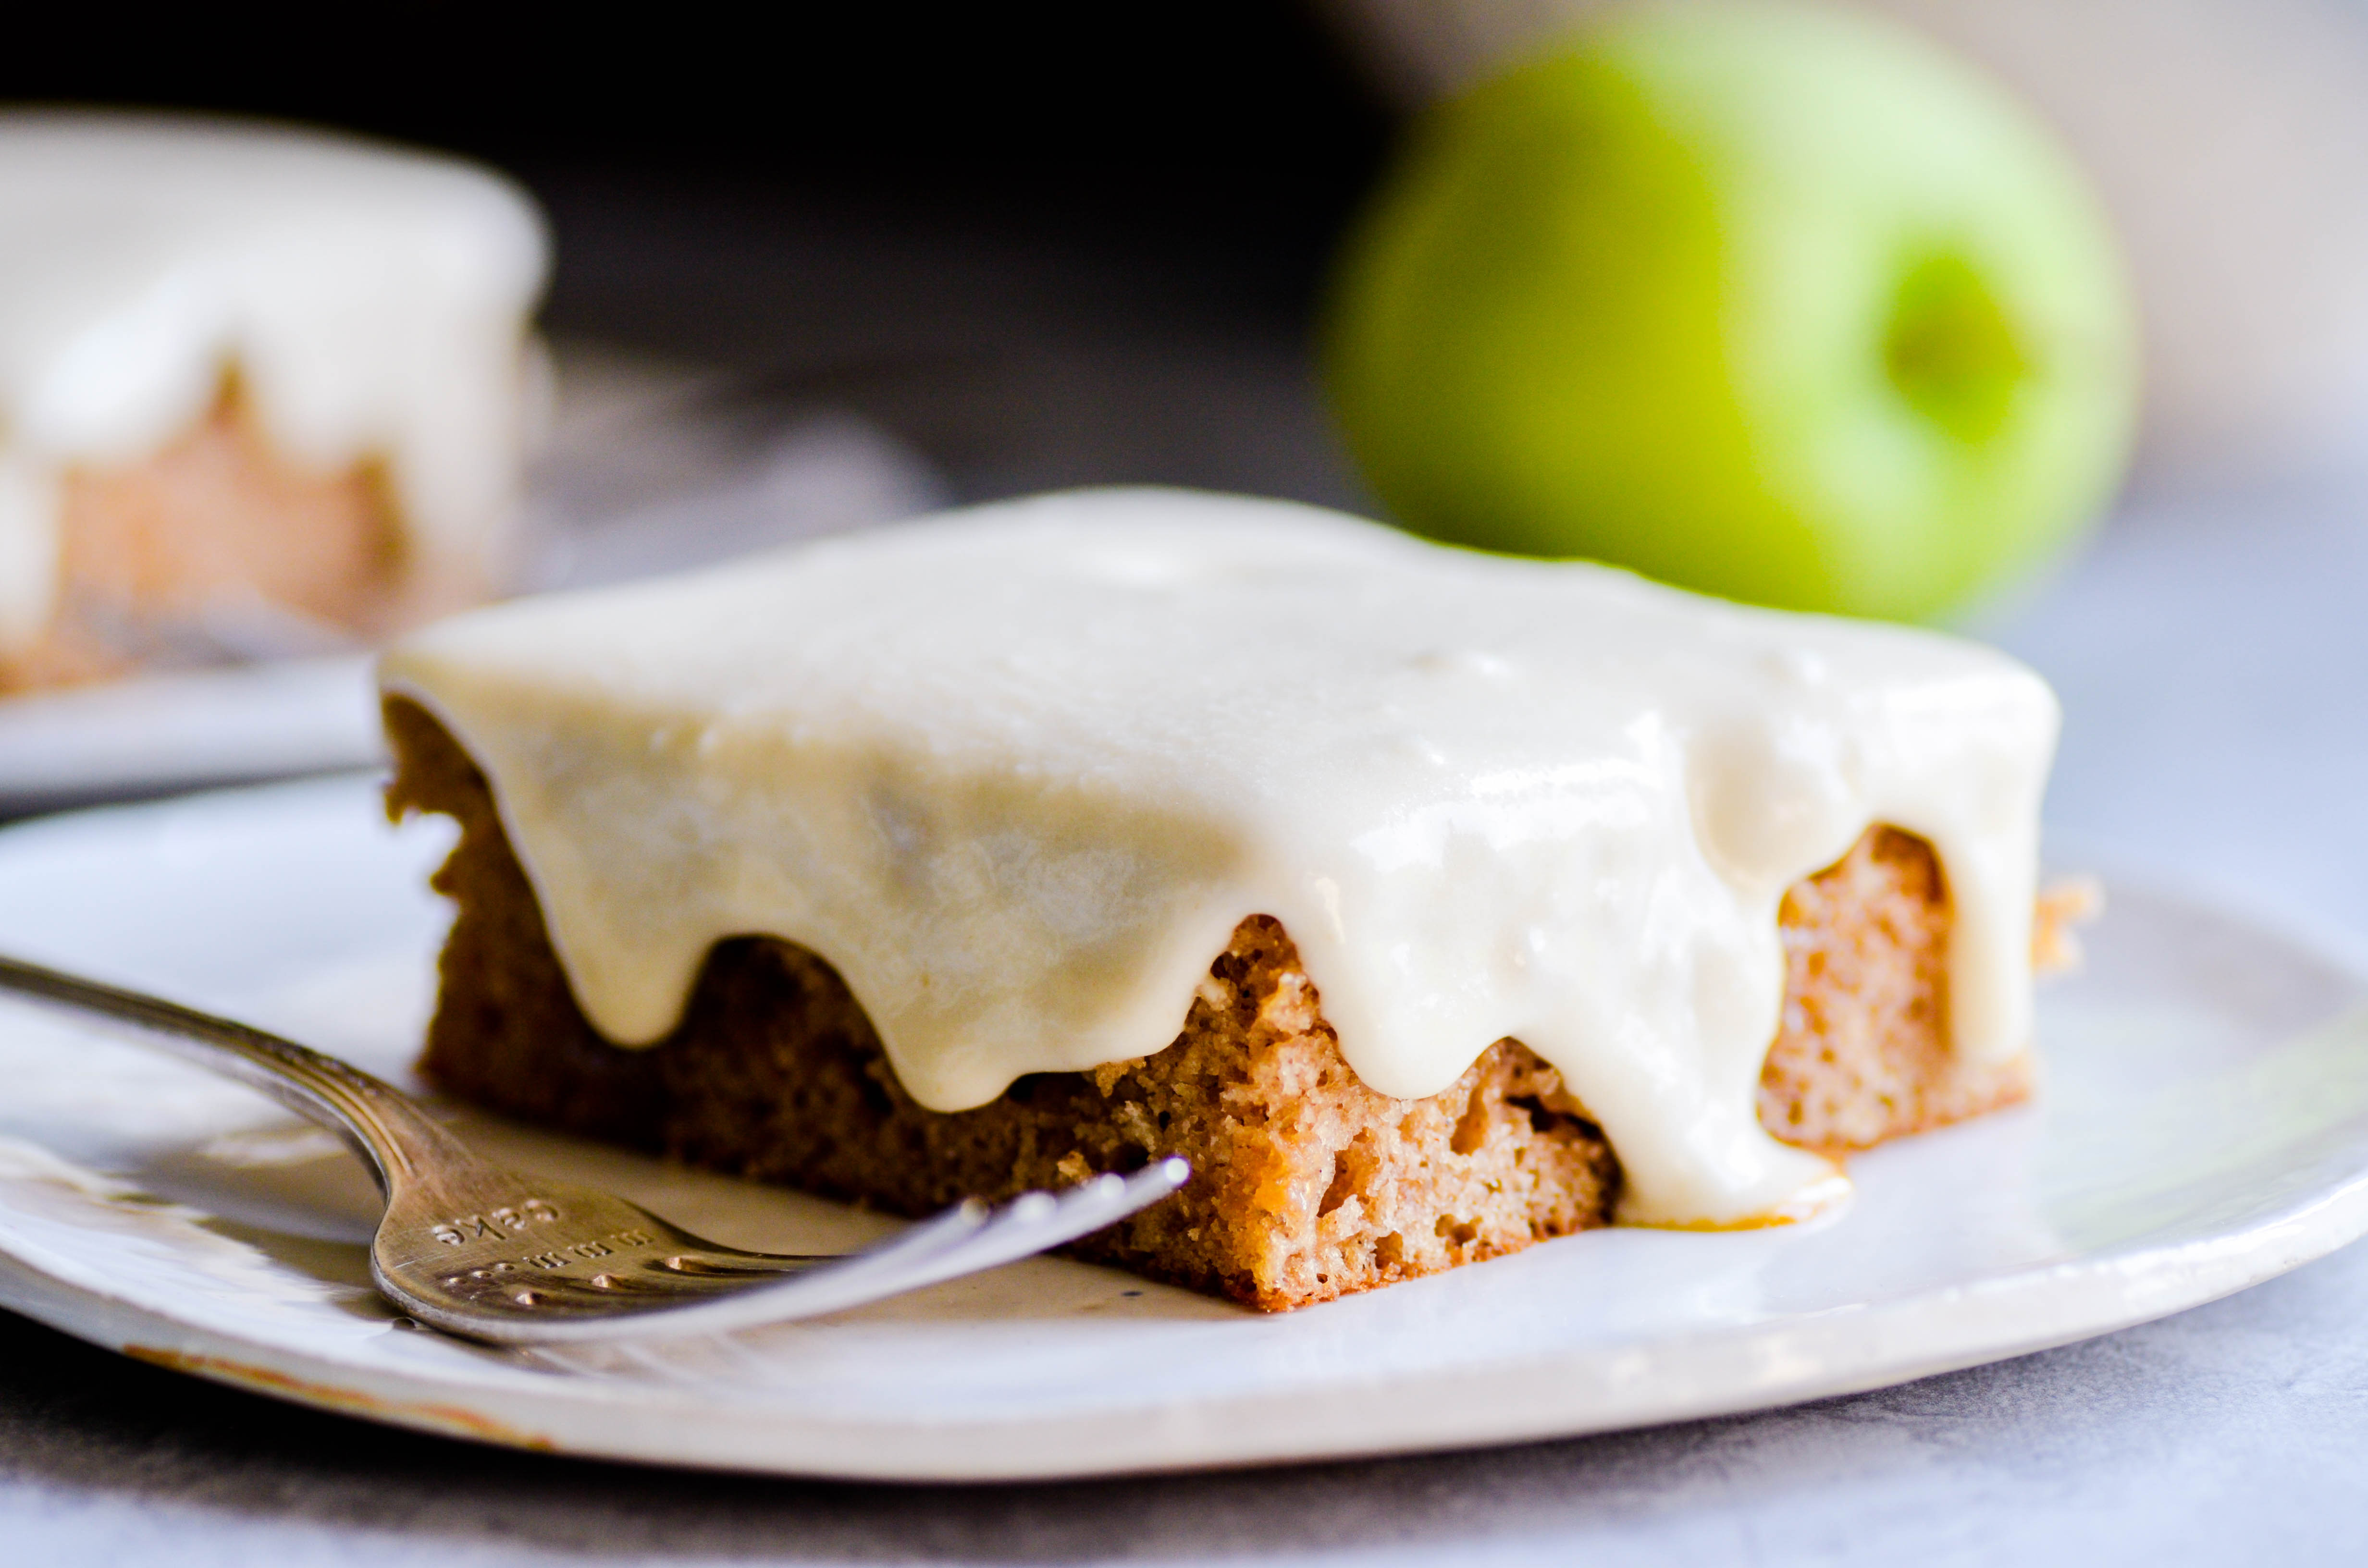 Delicious apple spice sheet cake soaked in caramel sauce and topped with caramel icing.